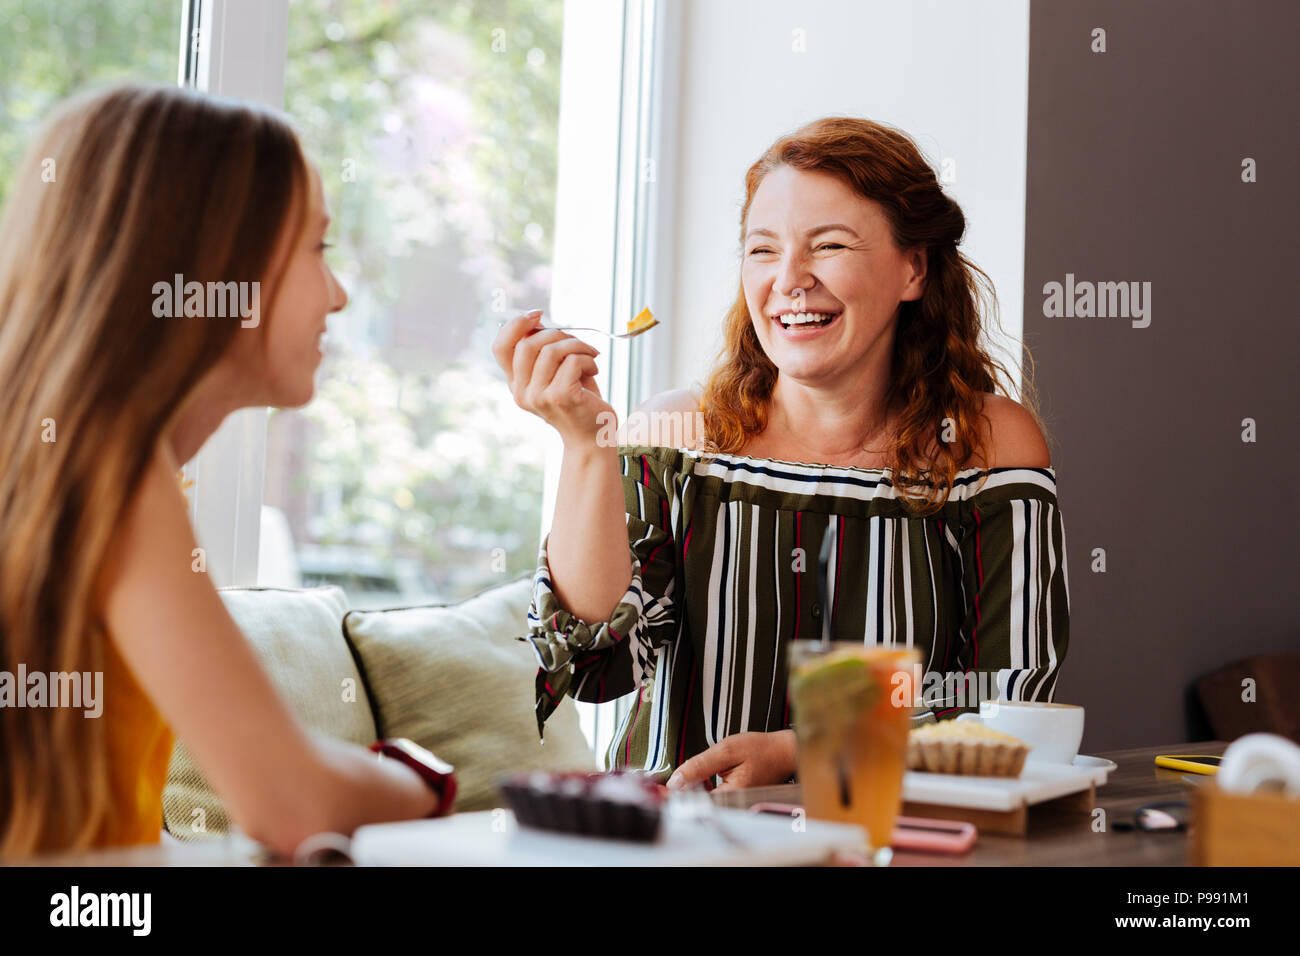 Red-haired woman laughing while talking to daughter - Stock Image